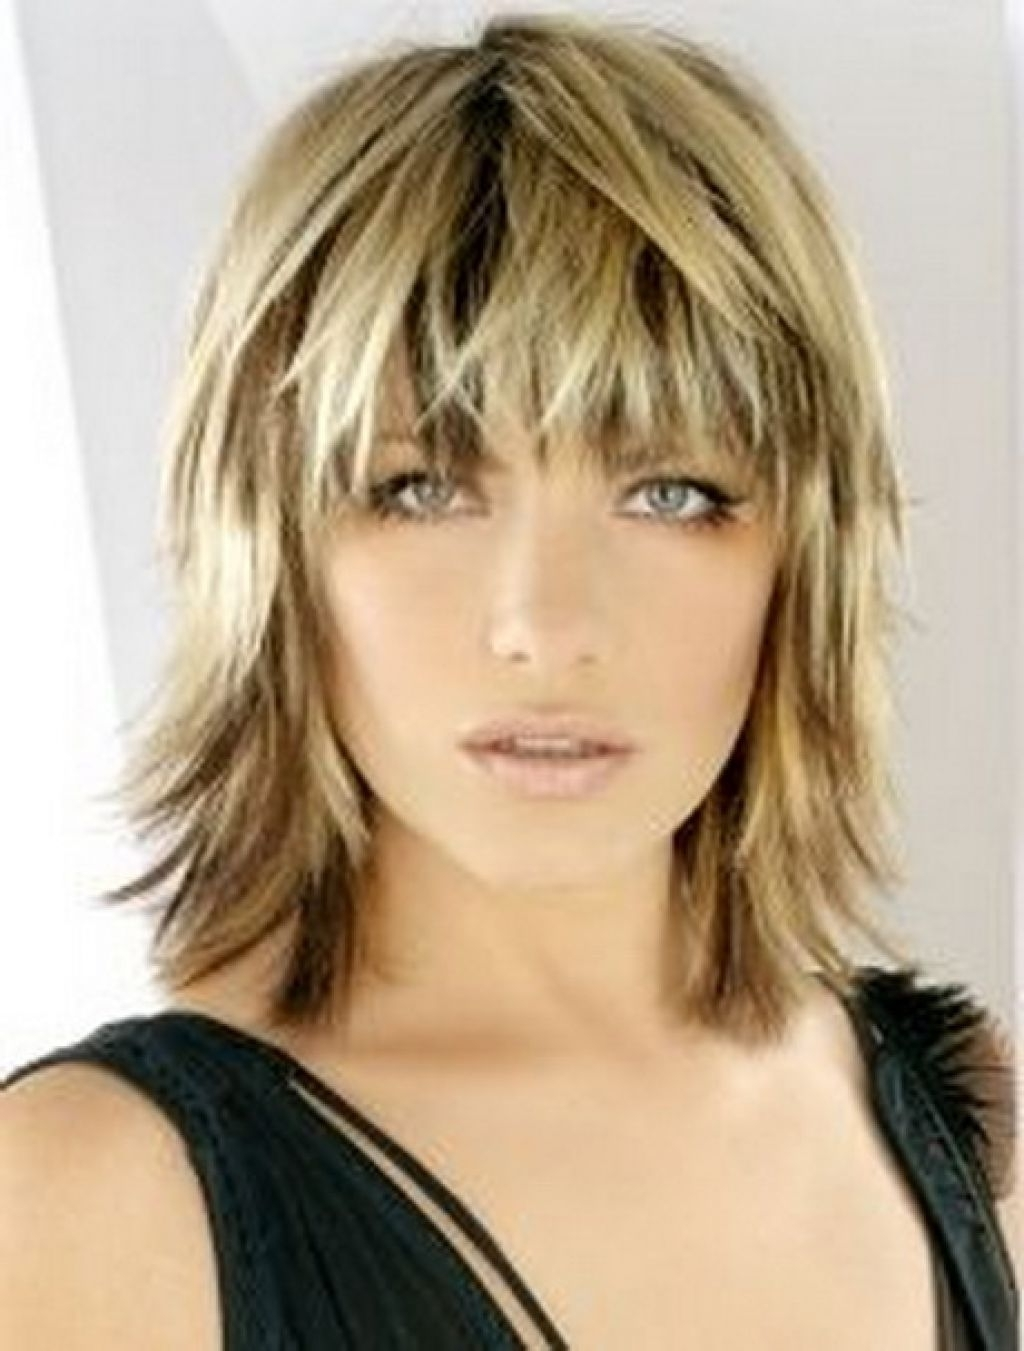 2018 Shoulder Length Shaggy Hairstyles Intended For Blonde Medium Length Choppy Shag Haircut With Wispy Bangs And Dark (View 1 of 15)